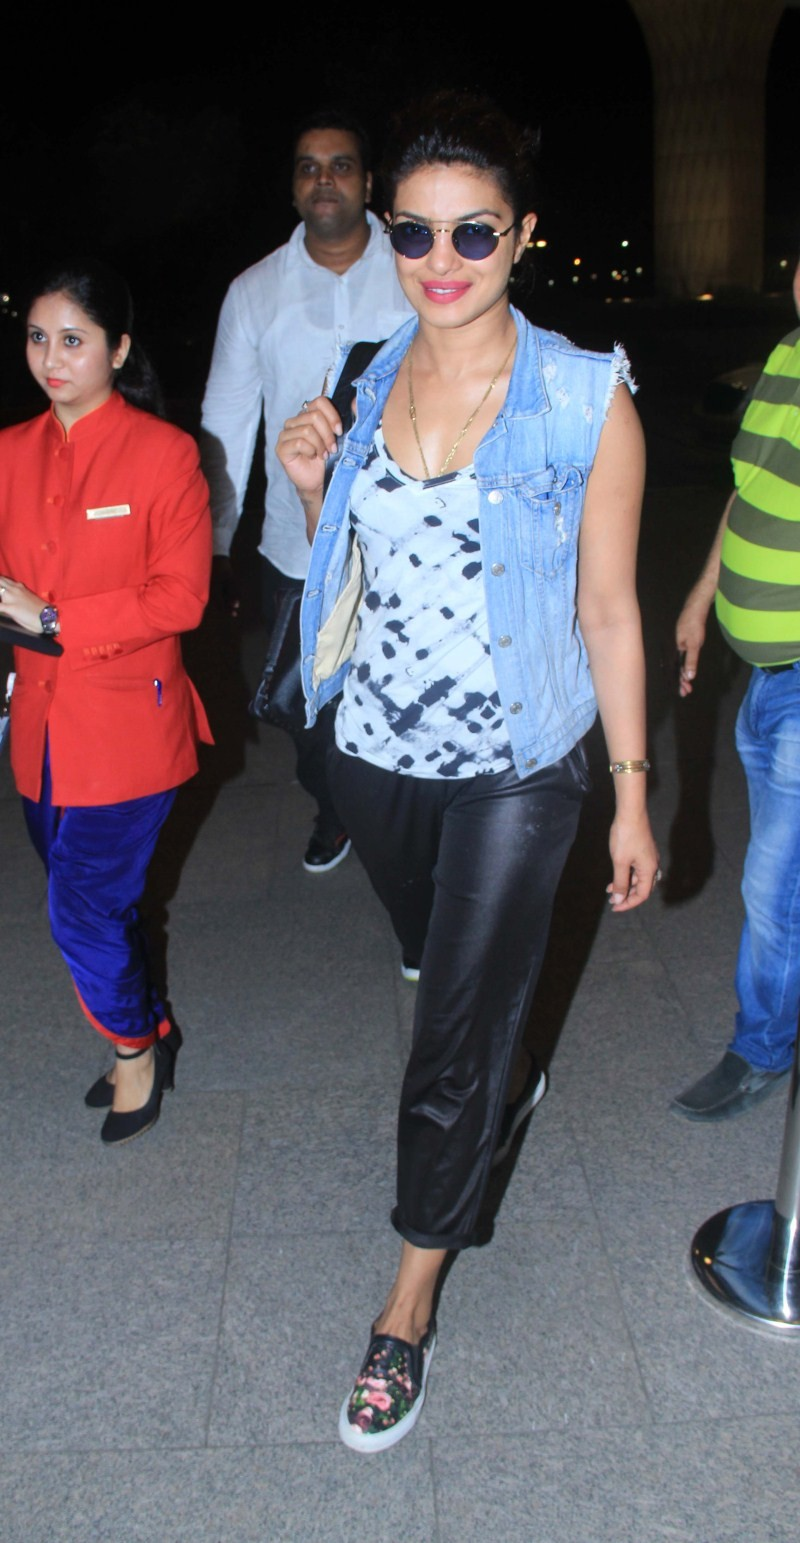 Priyanka Chopra spotted at Airport,Priyanka Chopra at Airport,Priyanka Chopra,actress Priyanka Chopra,Priyanka Chopra pics,Priyanka Chopra images,Priyanka Chopra stills,Priyanka Chopra picutres,hot Priyanka Chopra,Priyanka Chopra hot pics,Priyanka Chopra